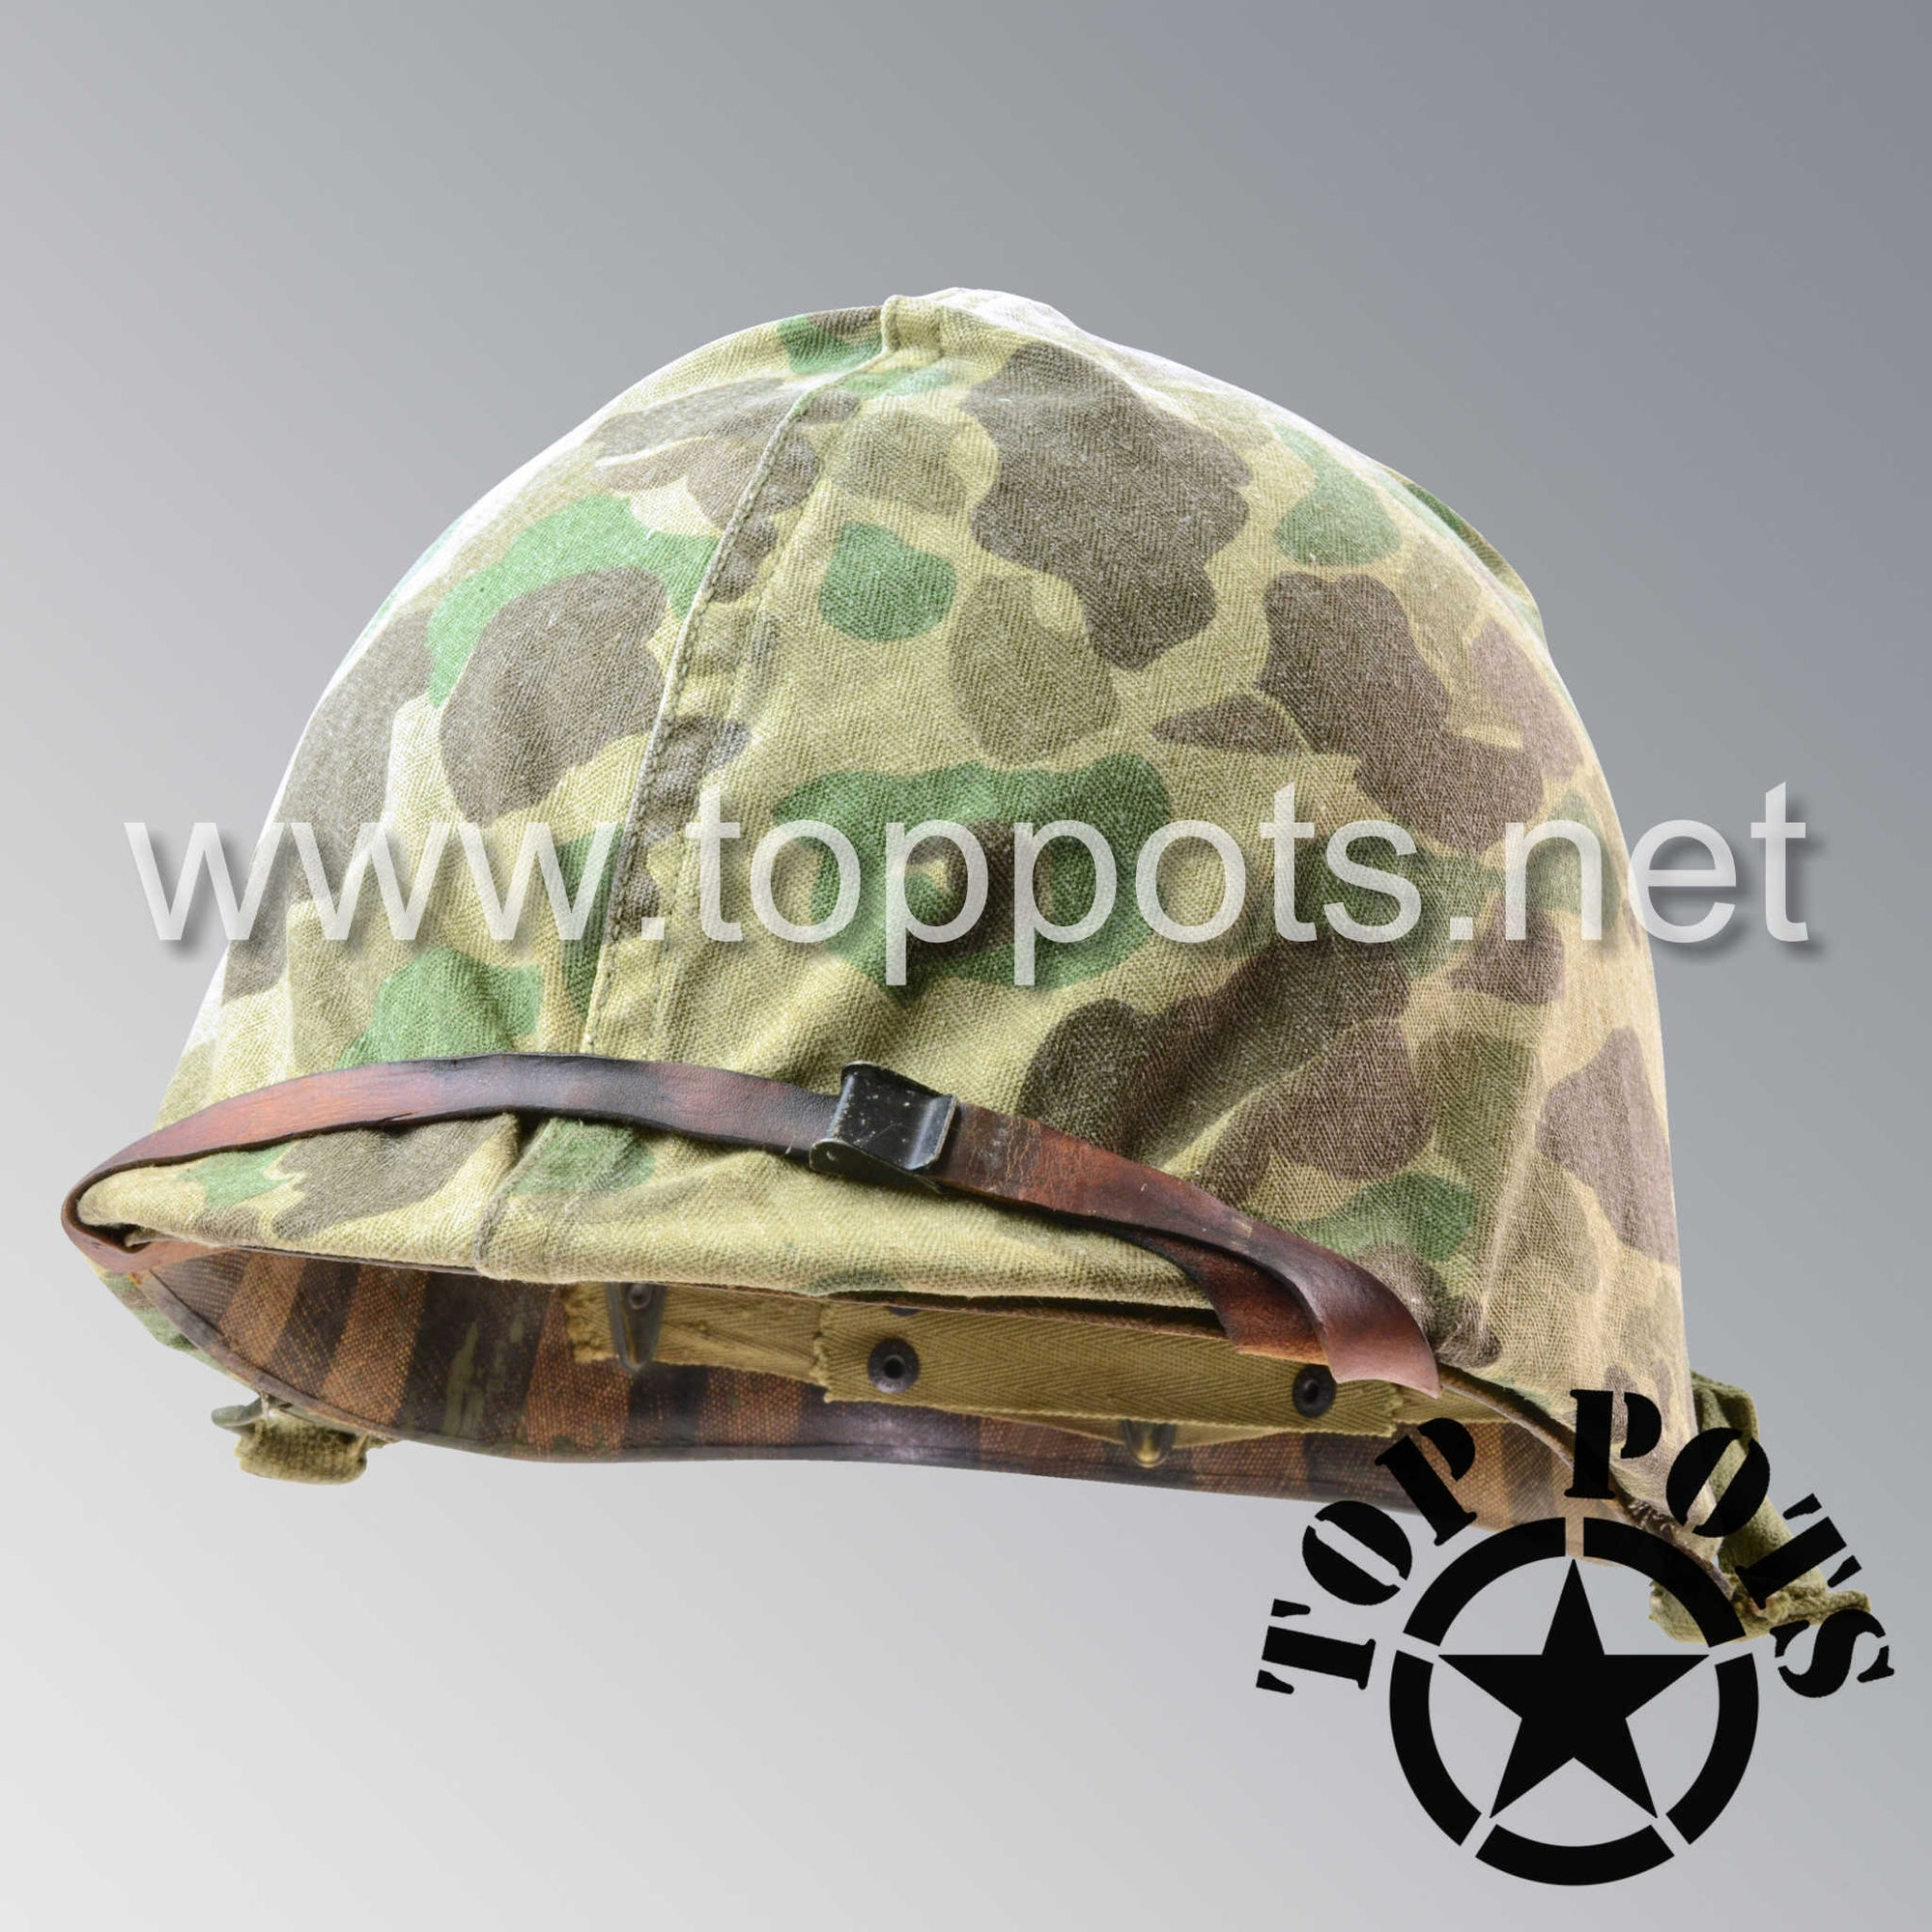 Image 1 of WWII USMC Aged Original M1 Infantry Helmet Swivel Bale Shell and Liner with Marine Corps Camouflage Cover